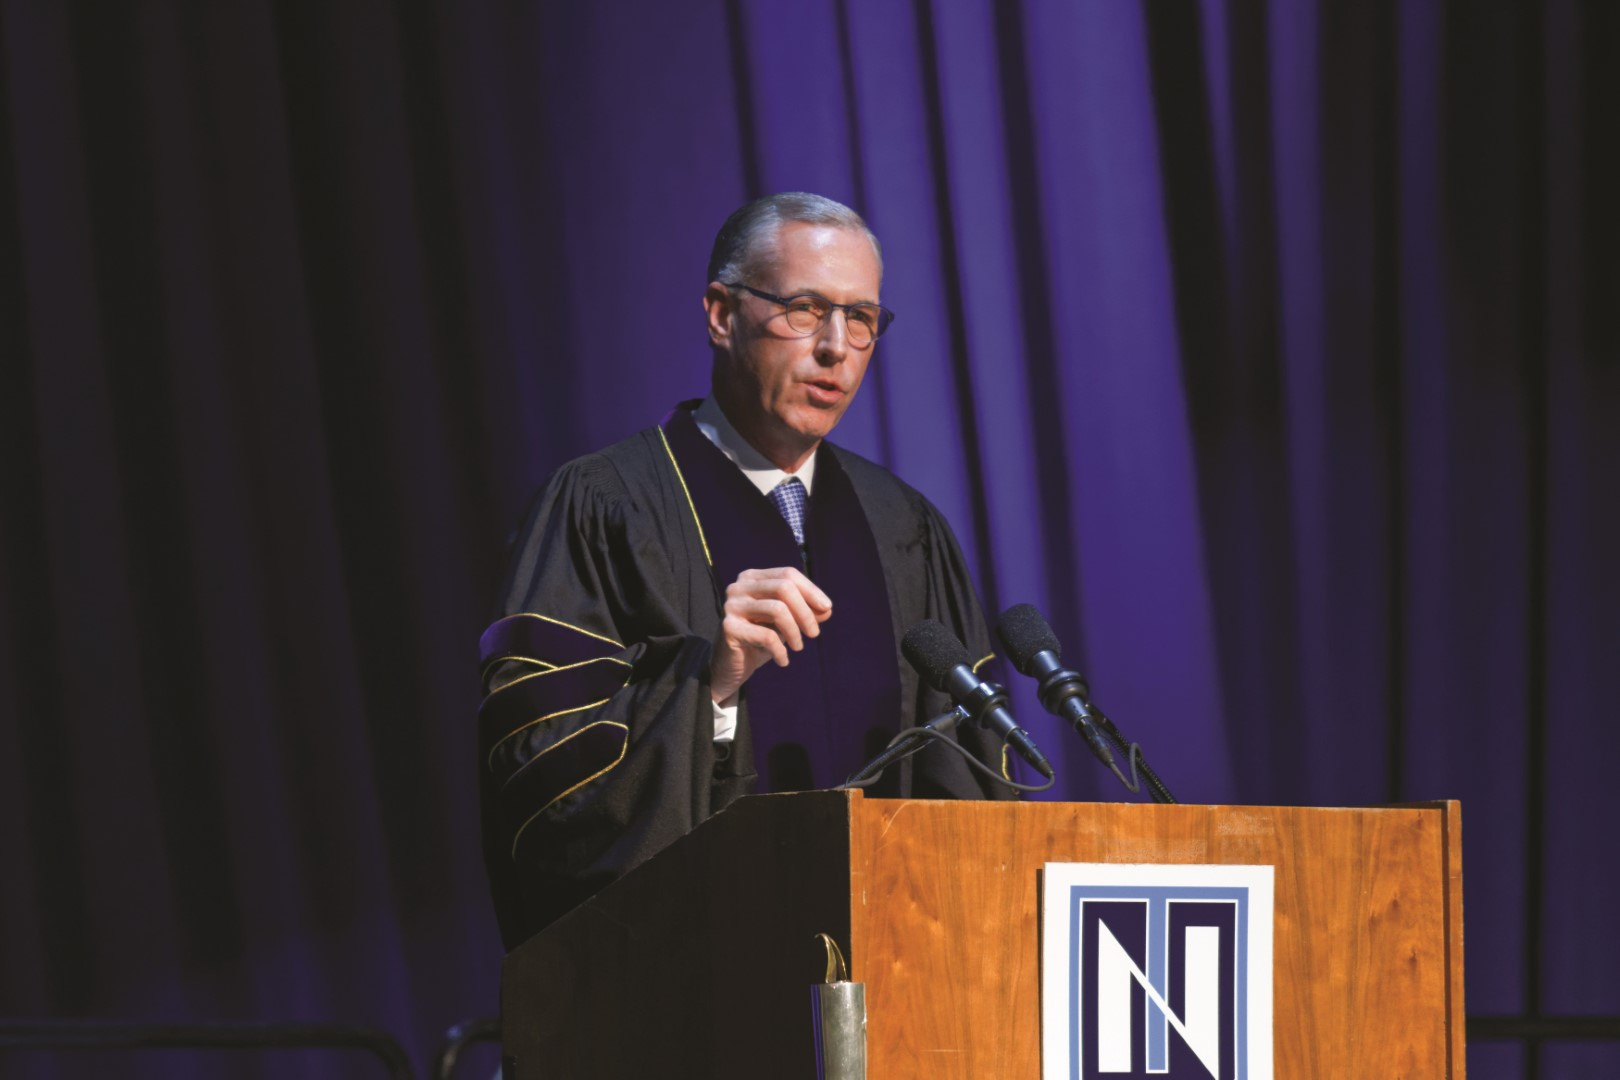 Jim Fitterling, Dow's chief executive officer, delivered the keynote address at Northwood's December 2018 commencement ceremony.